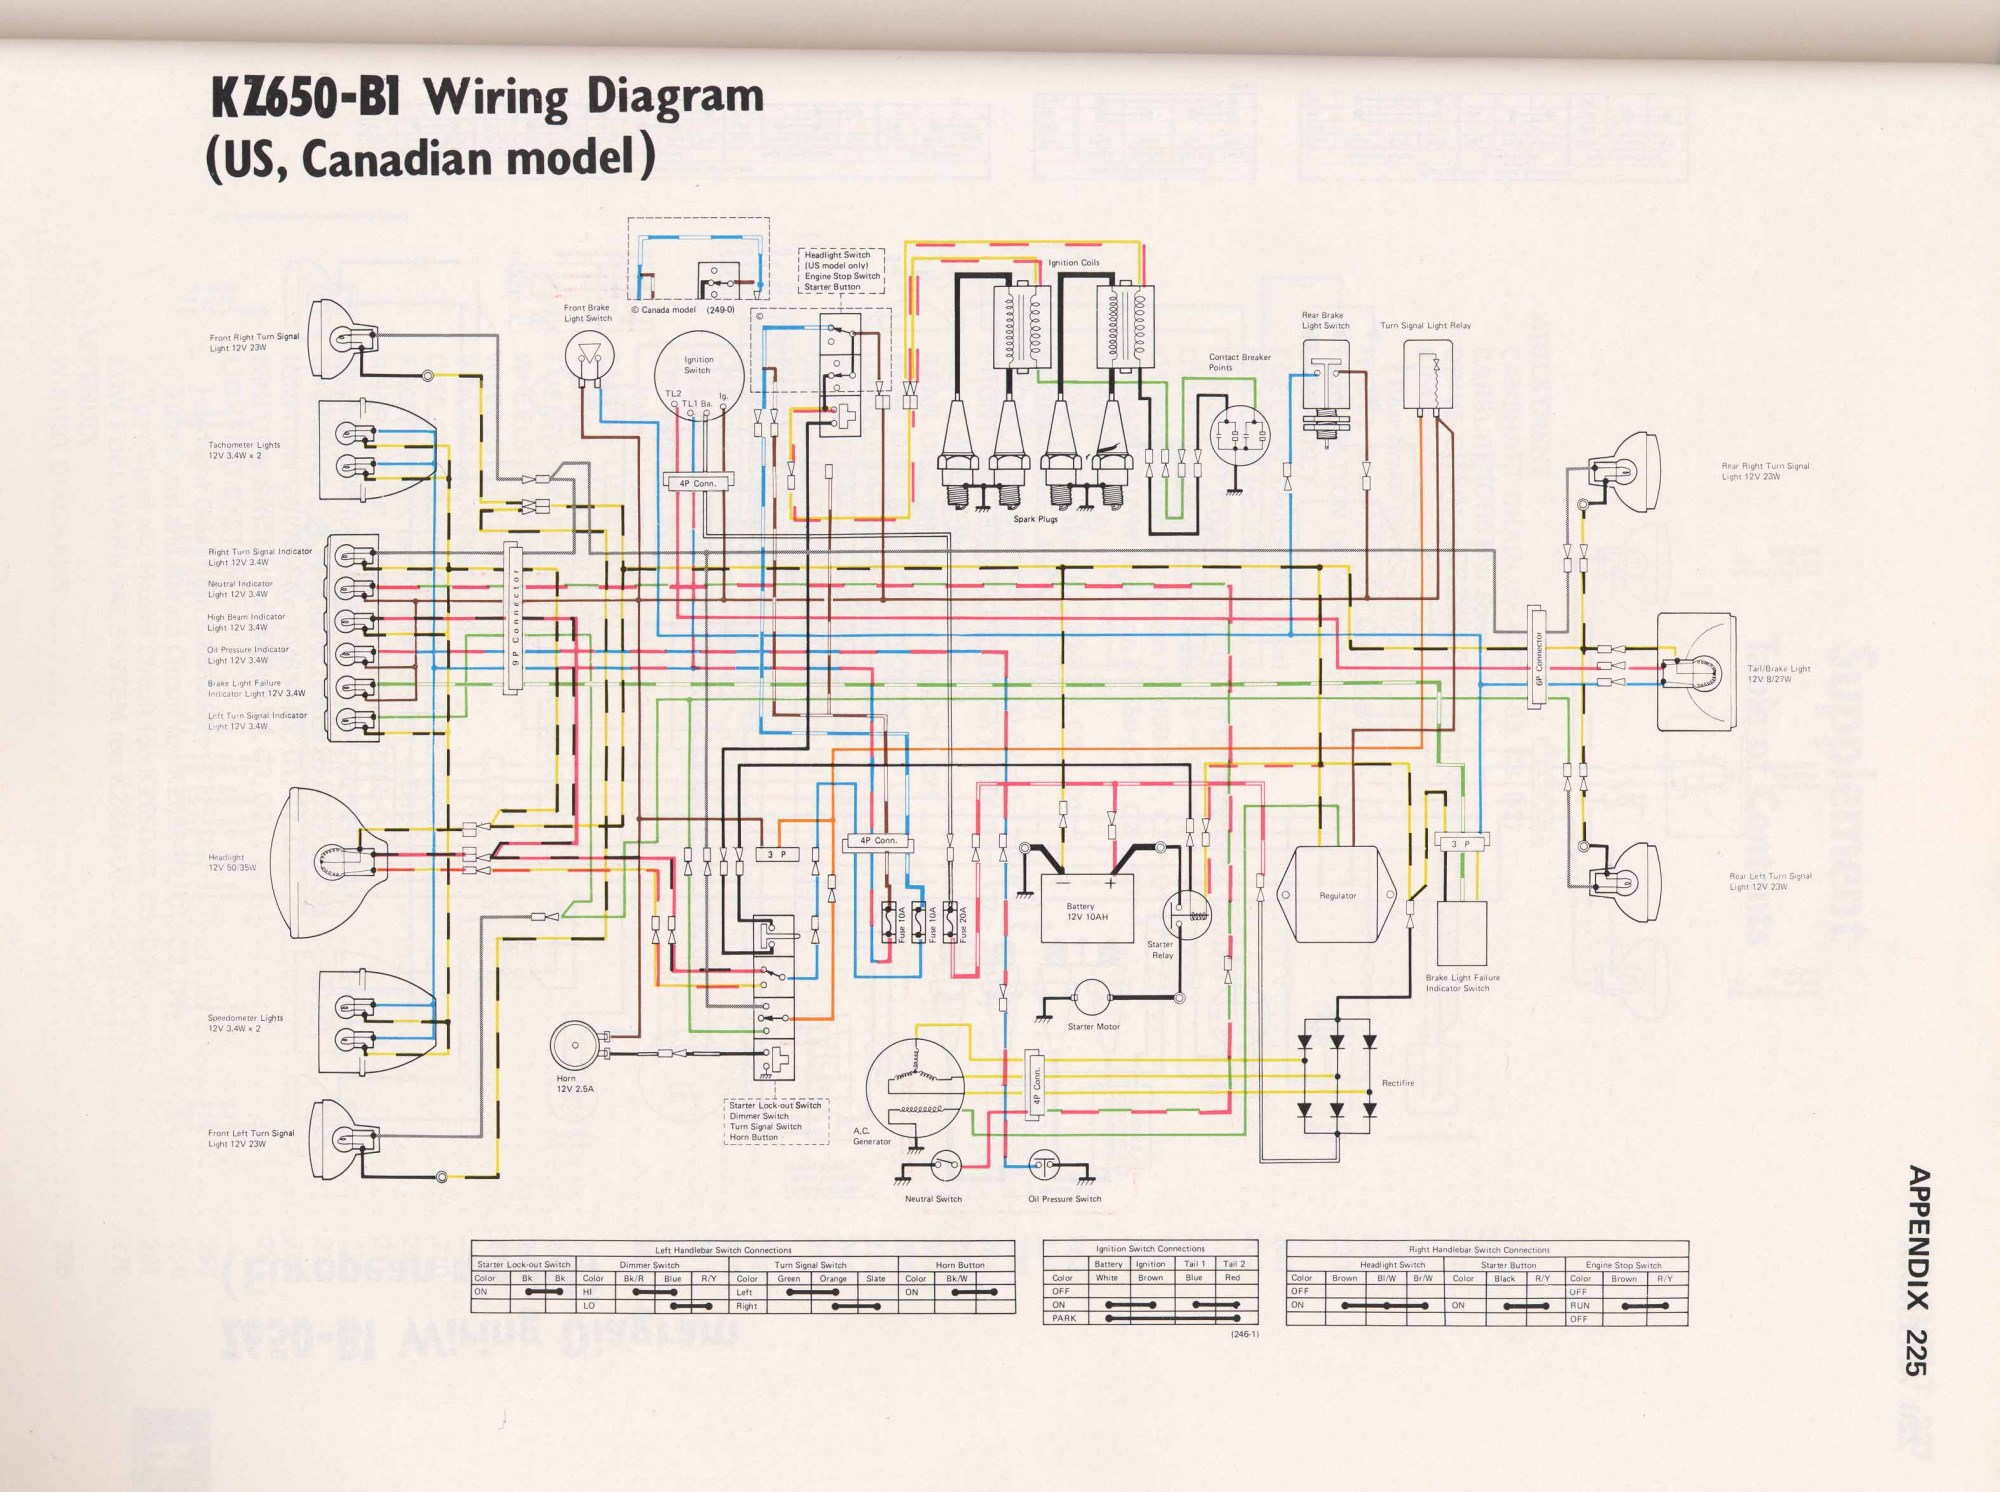 hight resolution of kz650 info wiring diagrams wiring schematics for cars k z 650 wiring schematic